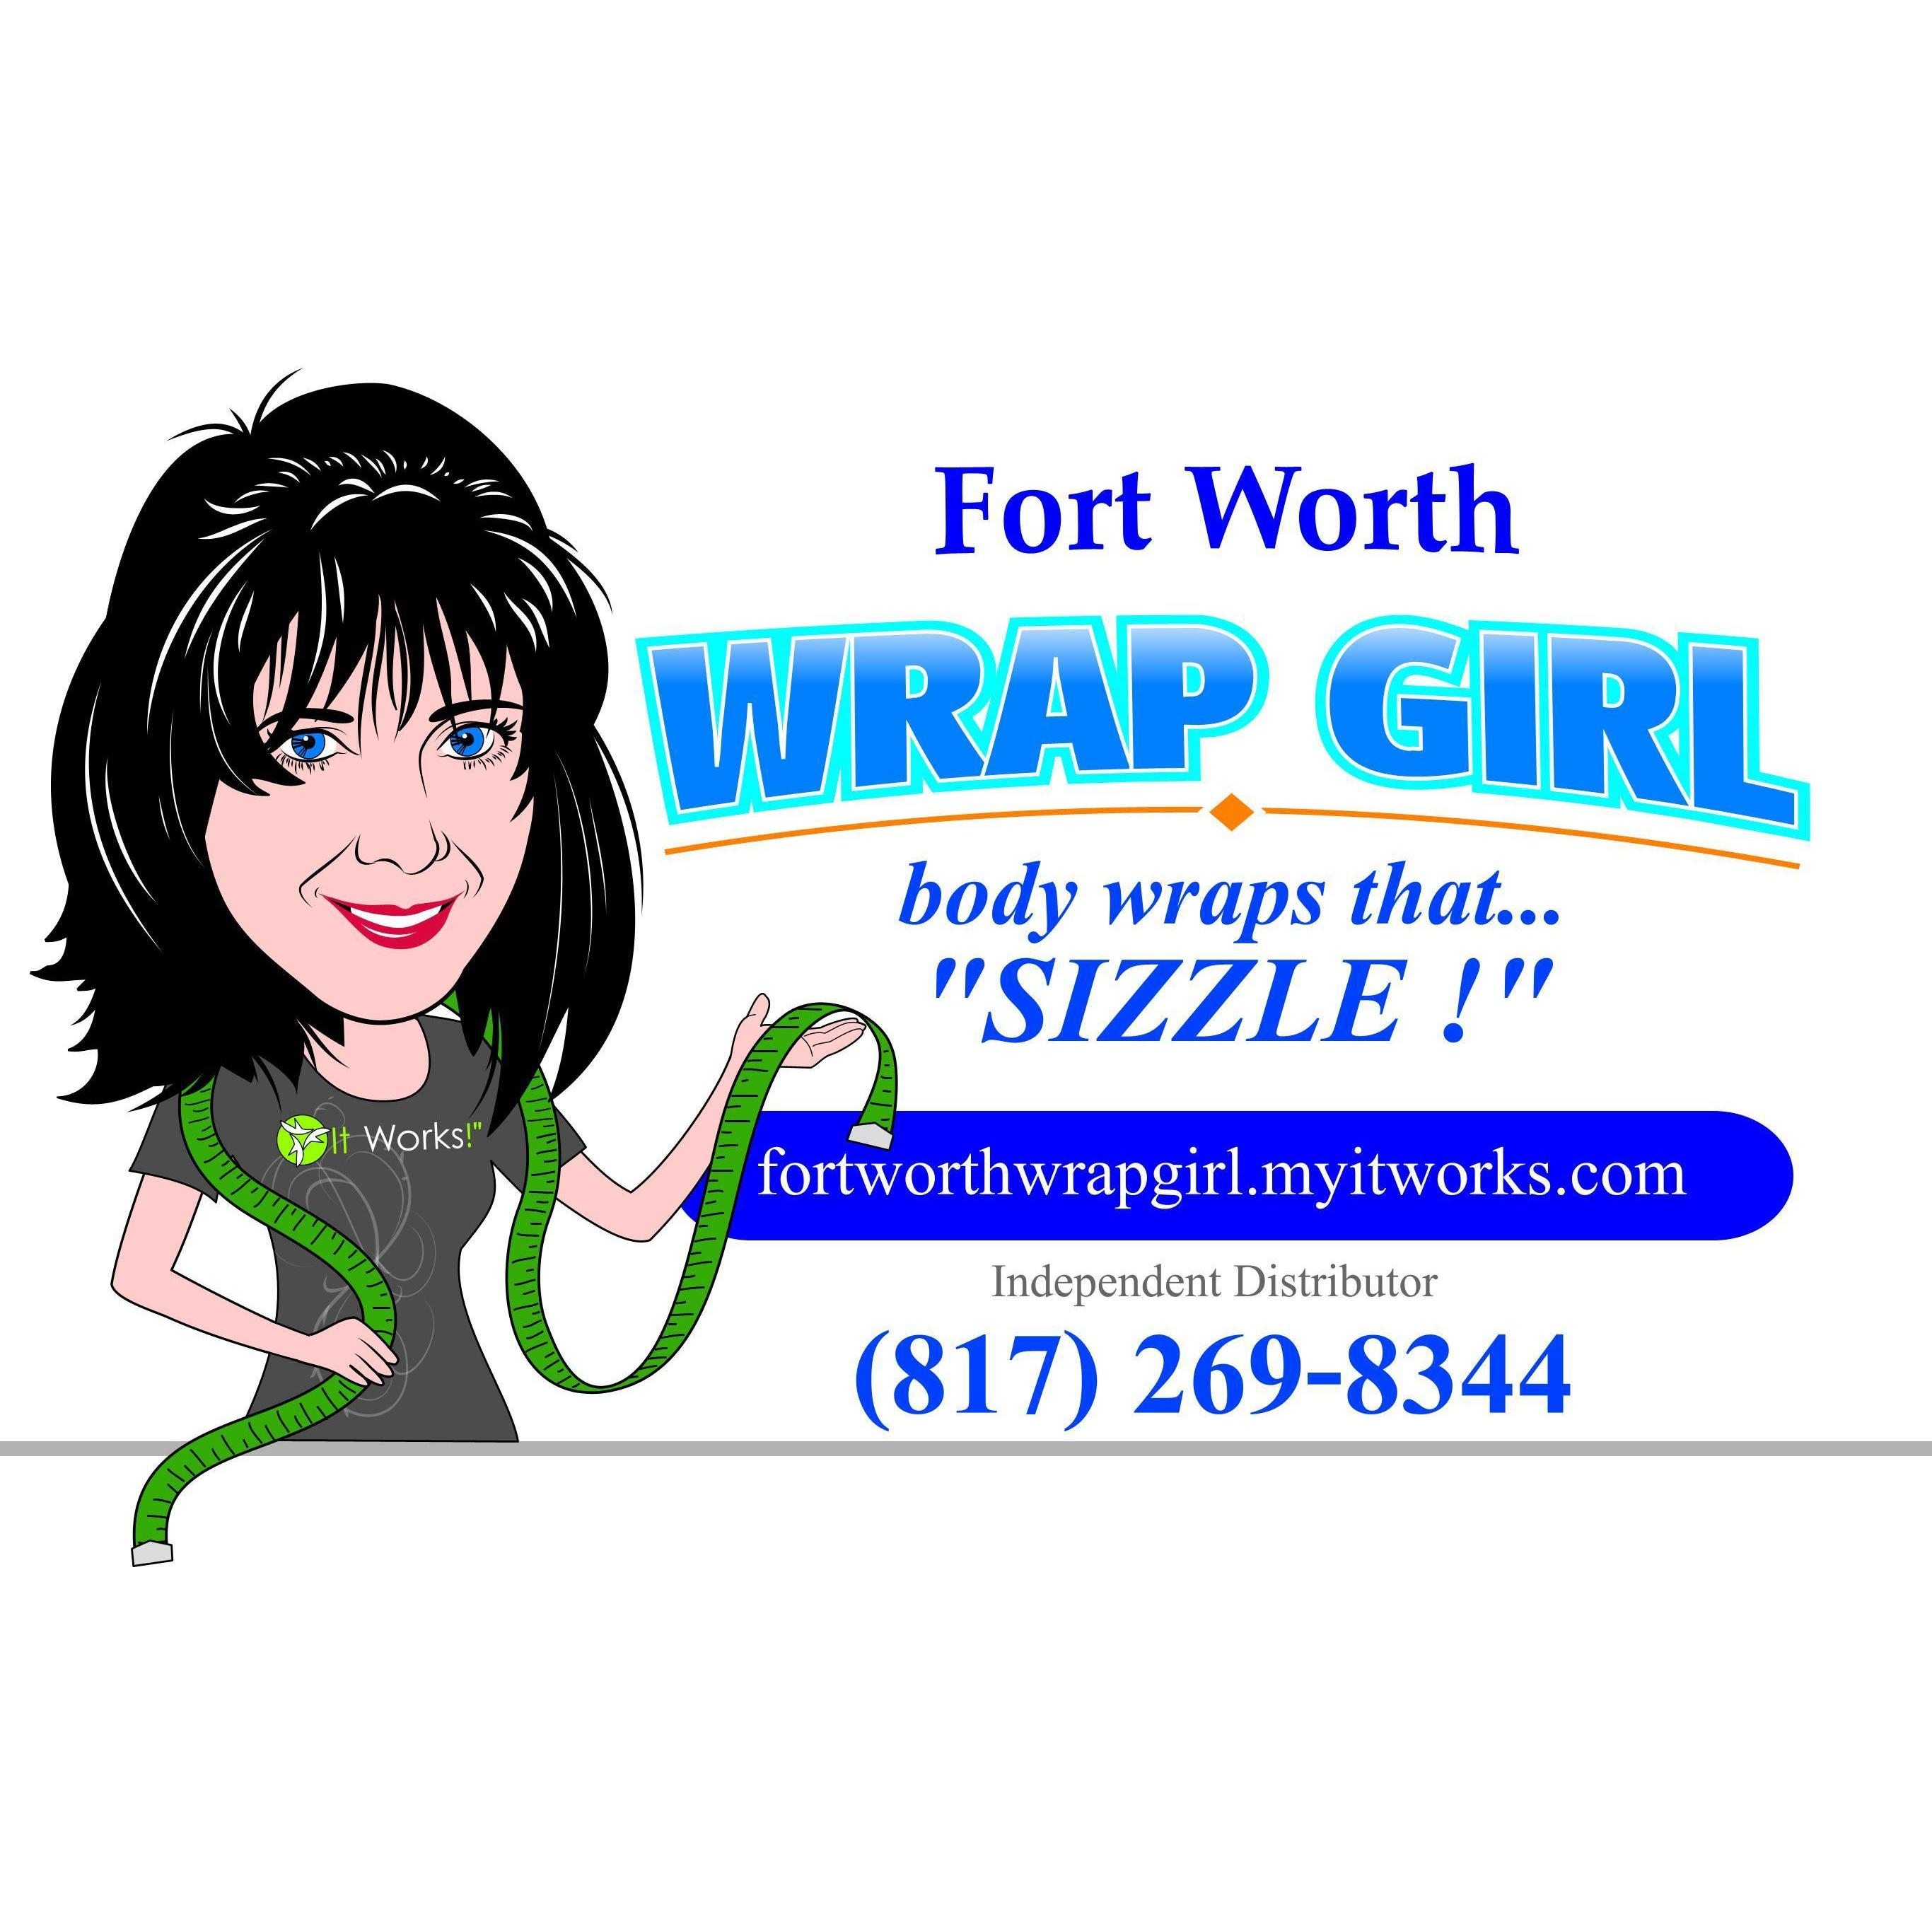 Fort Worth Wrap Girl